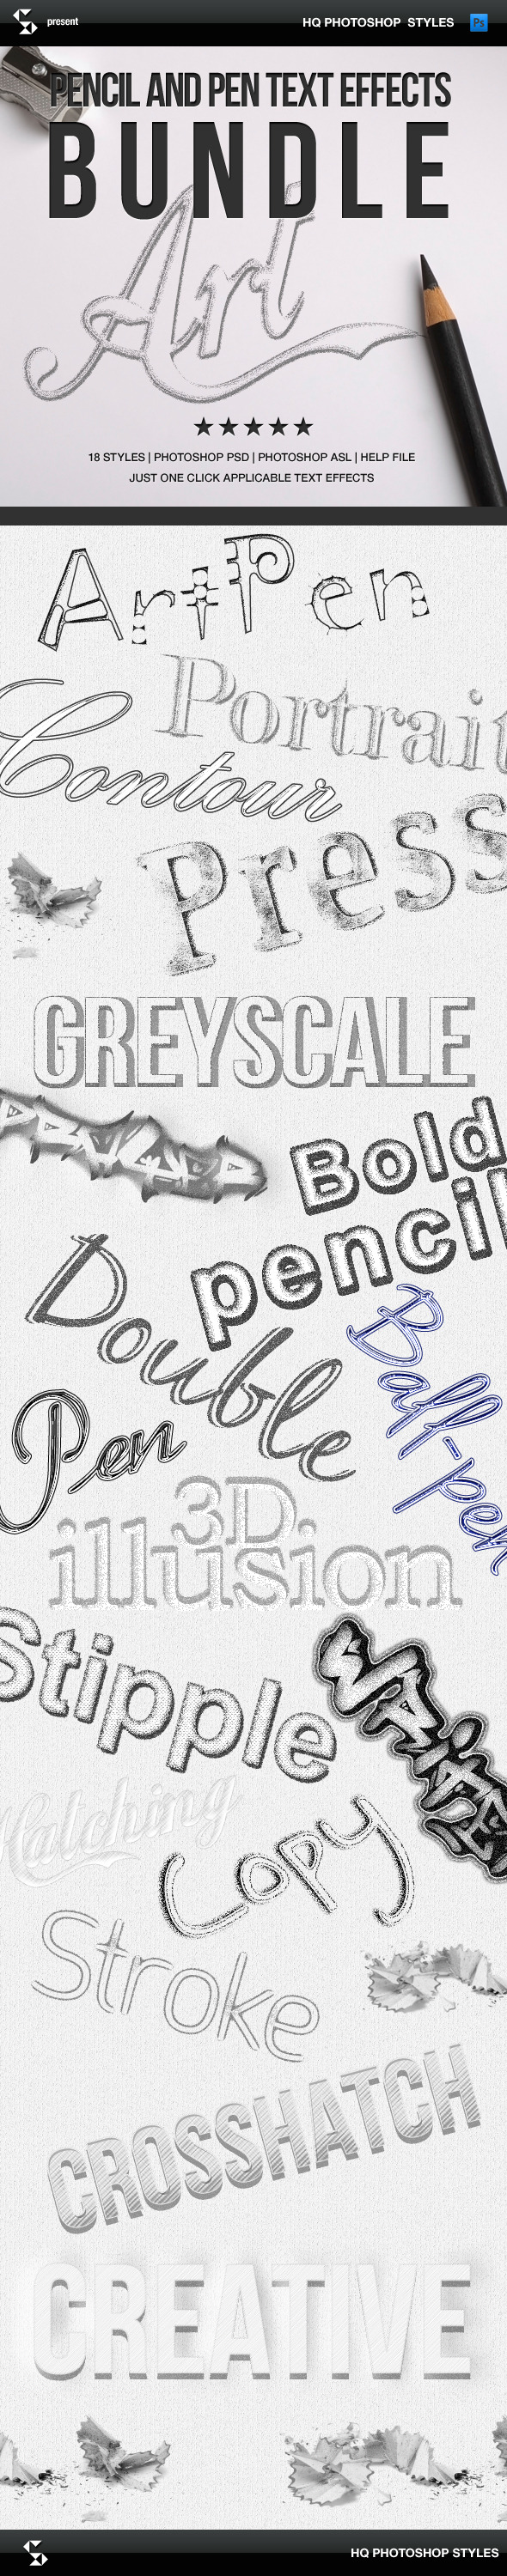 Pencil Styles Bundle - Pencil Art Text Effects - Text Effects Styles